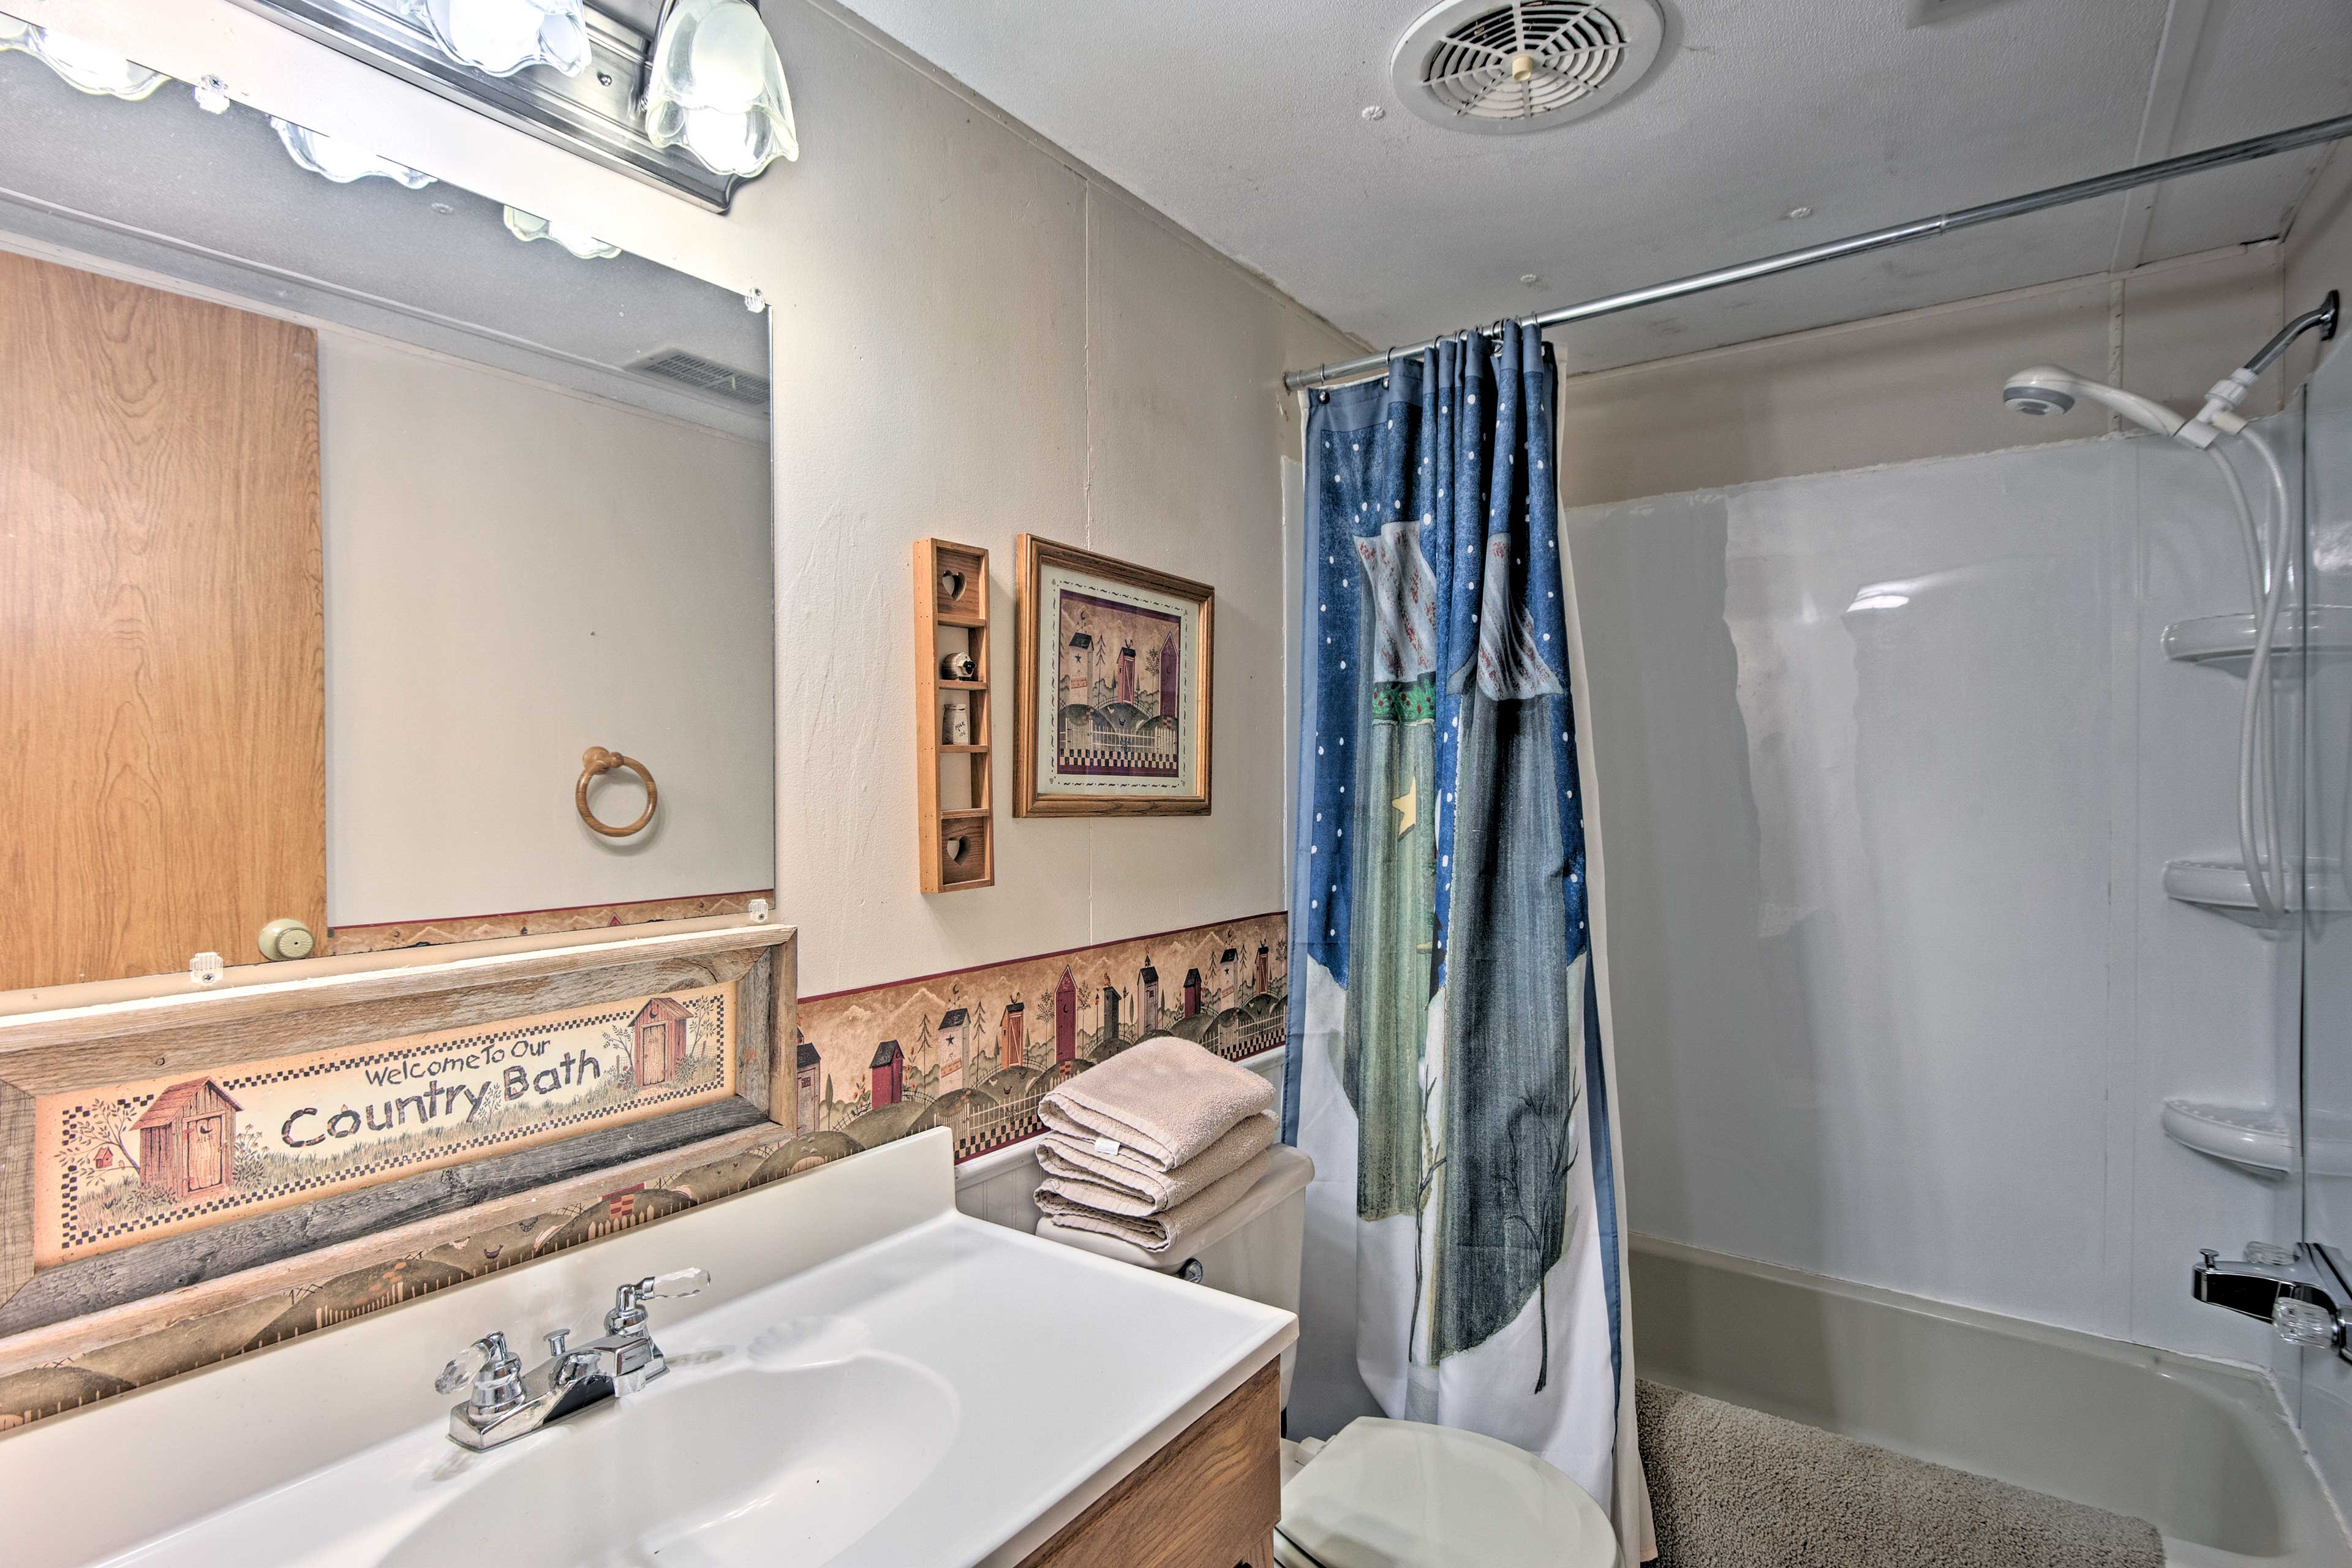 The property includes 2 full bathrooms.